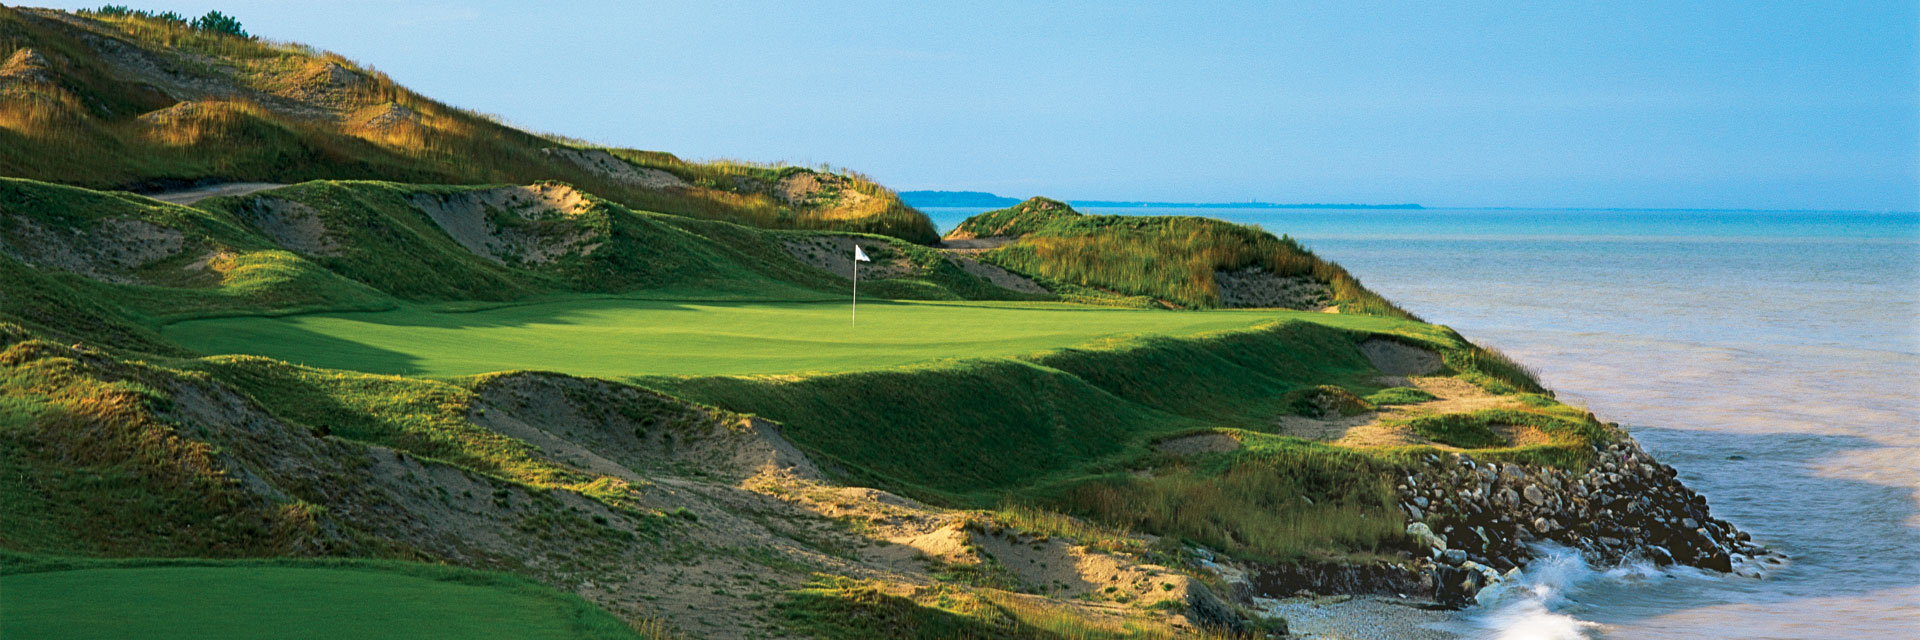 Whistling Straits October Stay and Play - Inn on Woodlake + Any 4 Courses for $439 per person, per day!